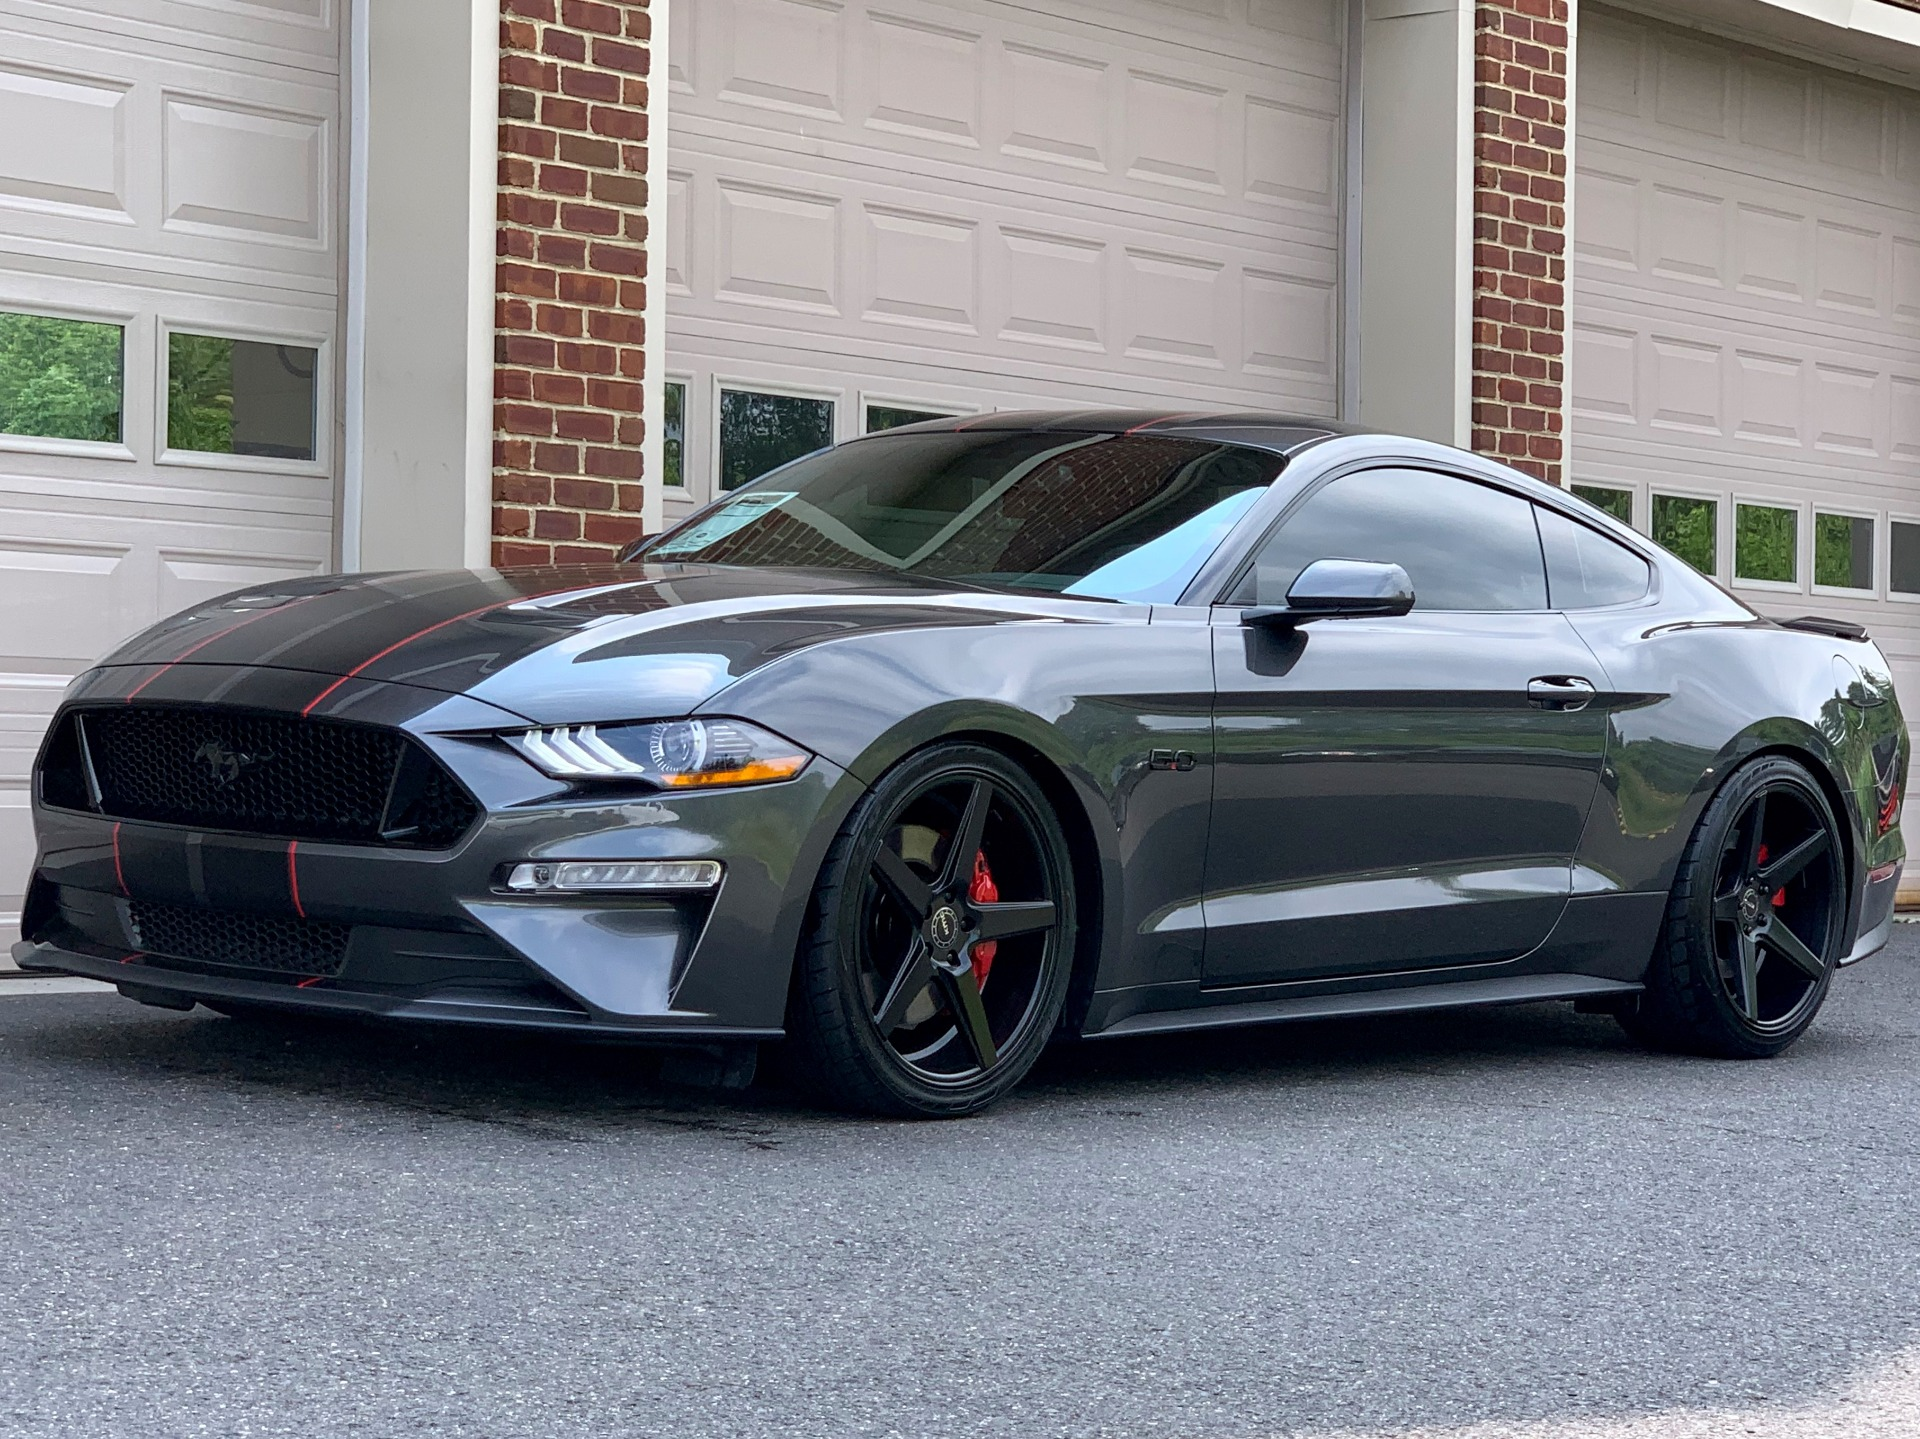 Ford Dealers Nj >> 2019 Ford Mustang GT Coupe Whipple Supercharged Stock ...